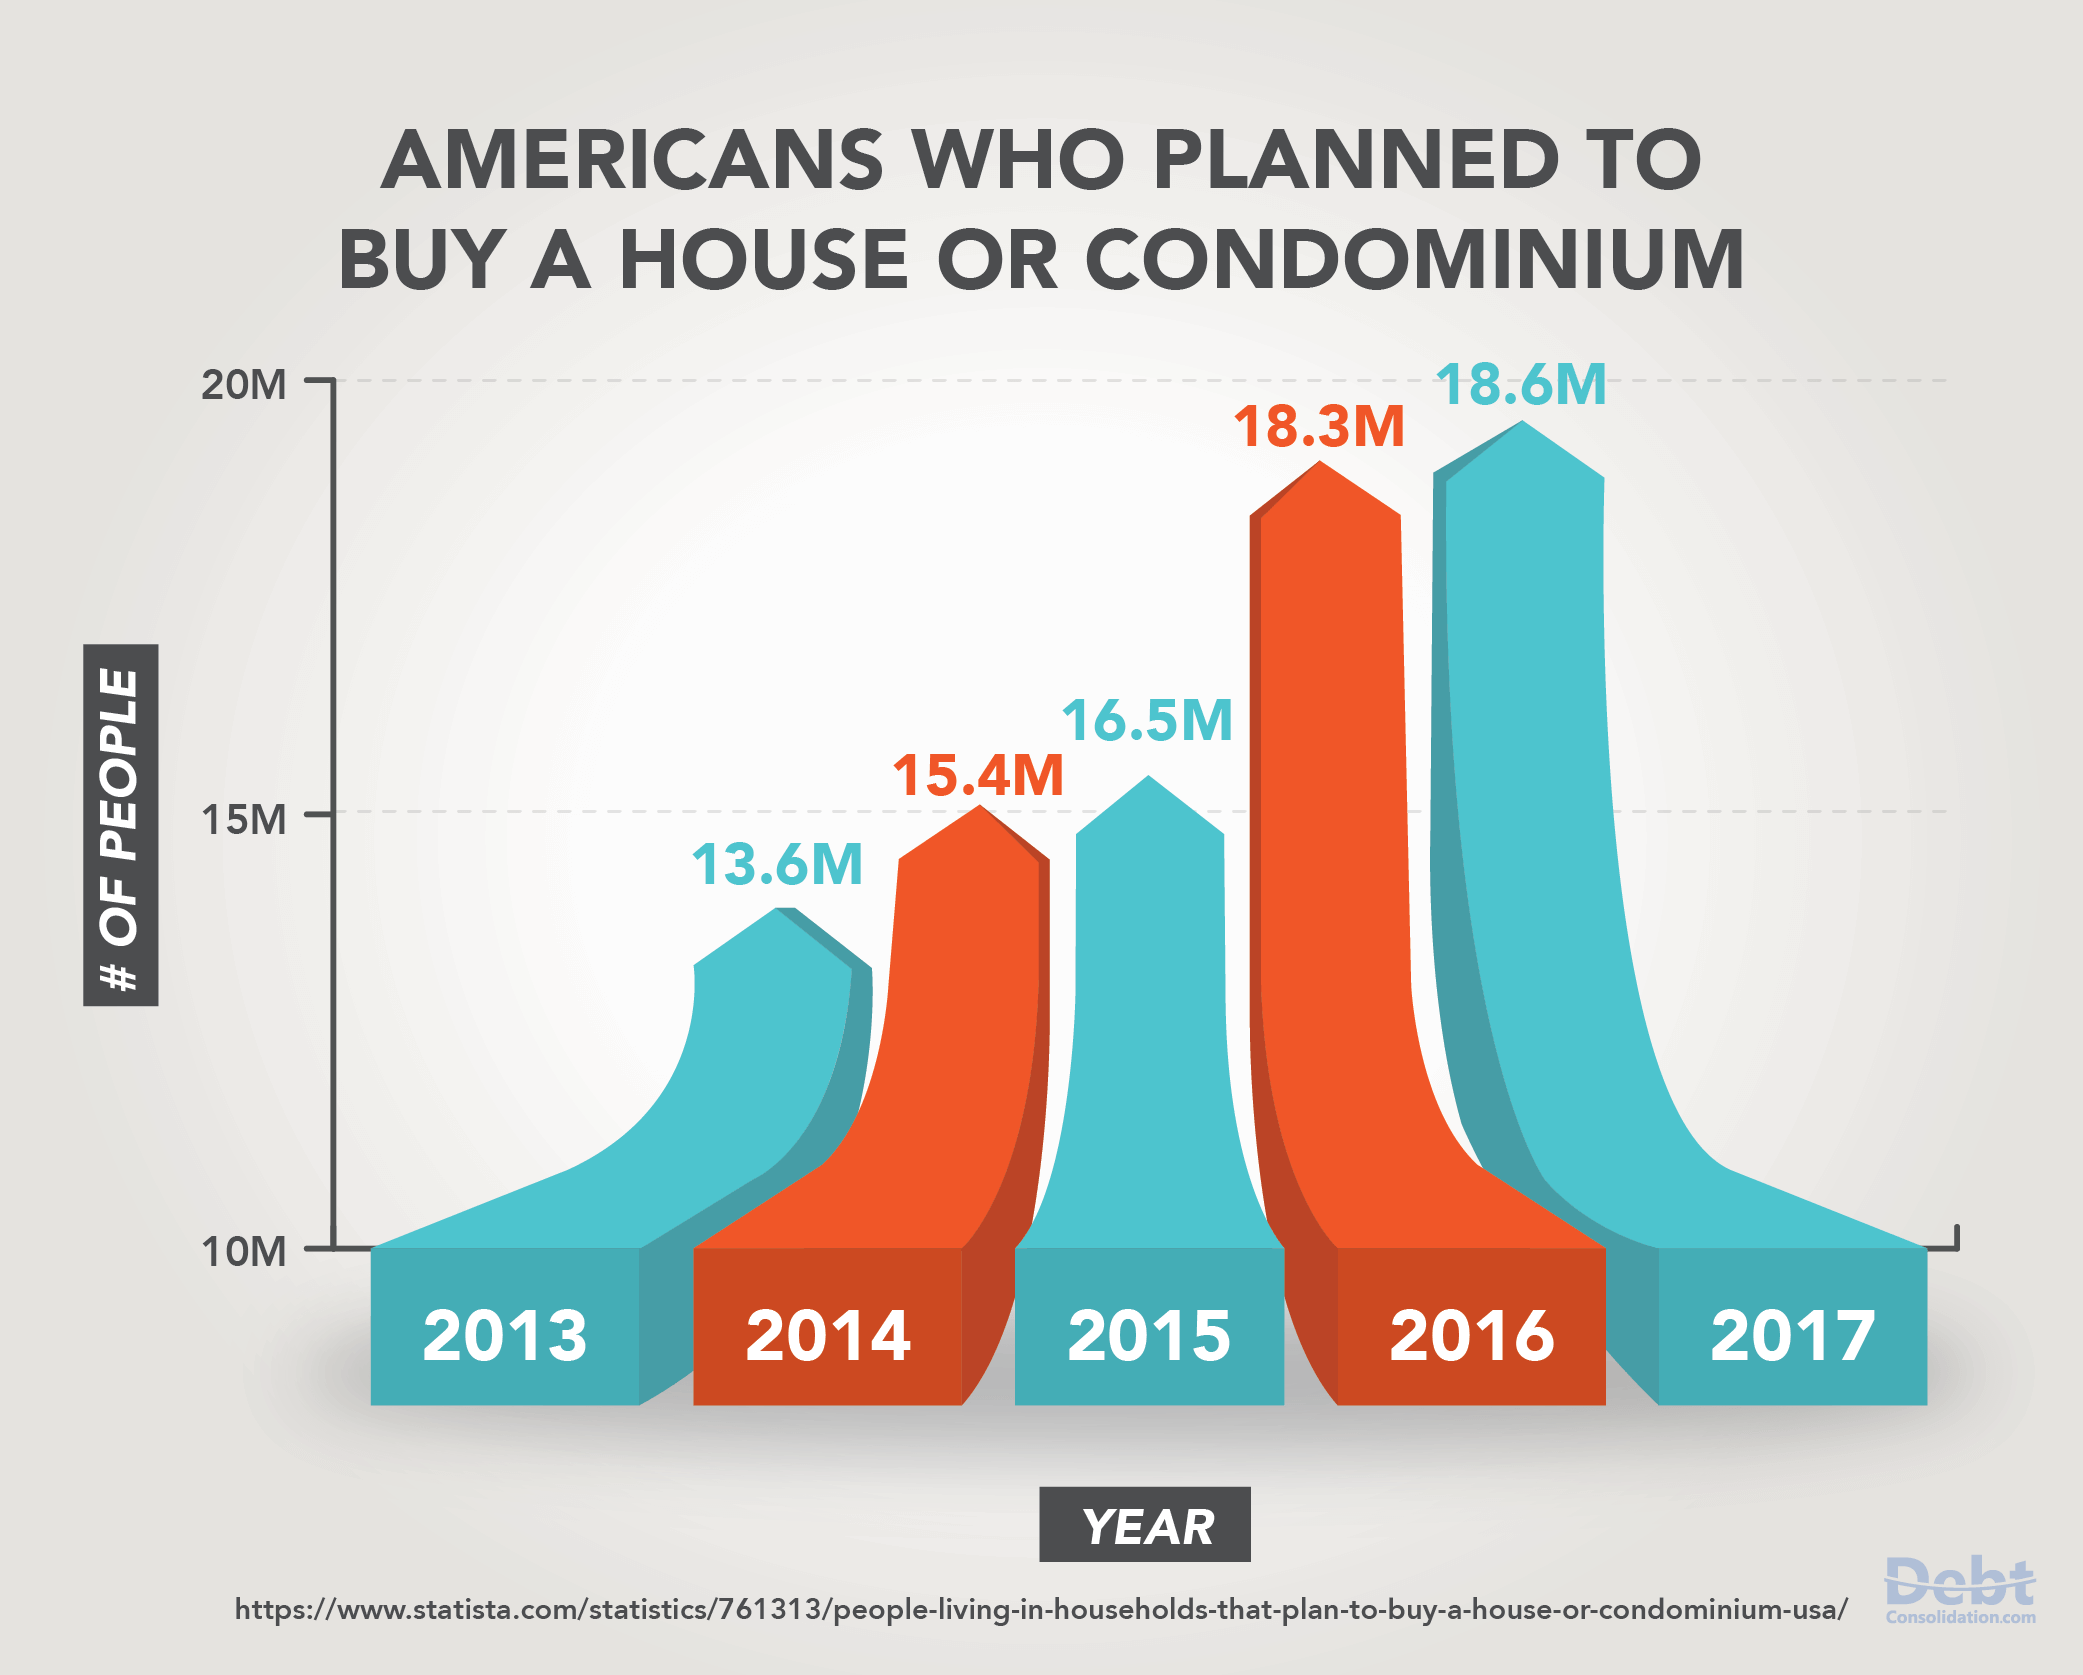 Americans Who Plan to Buy a House or Condominium from 2013-2017